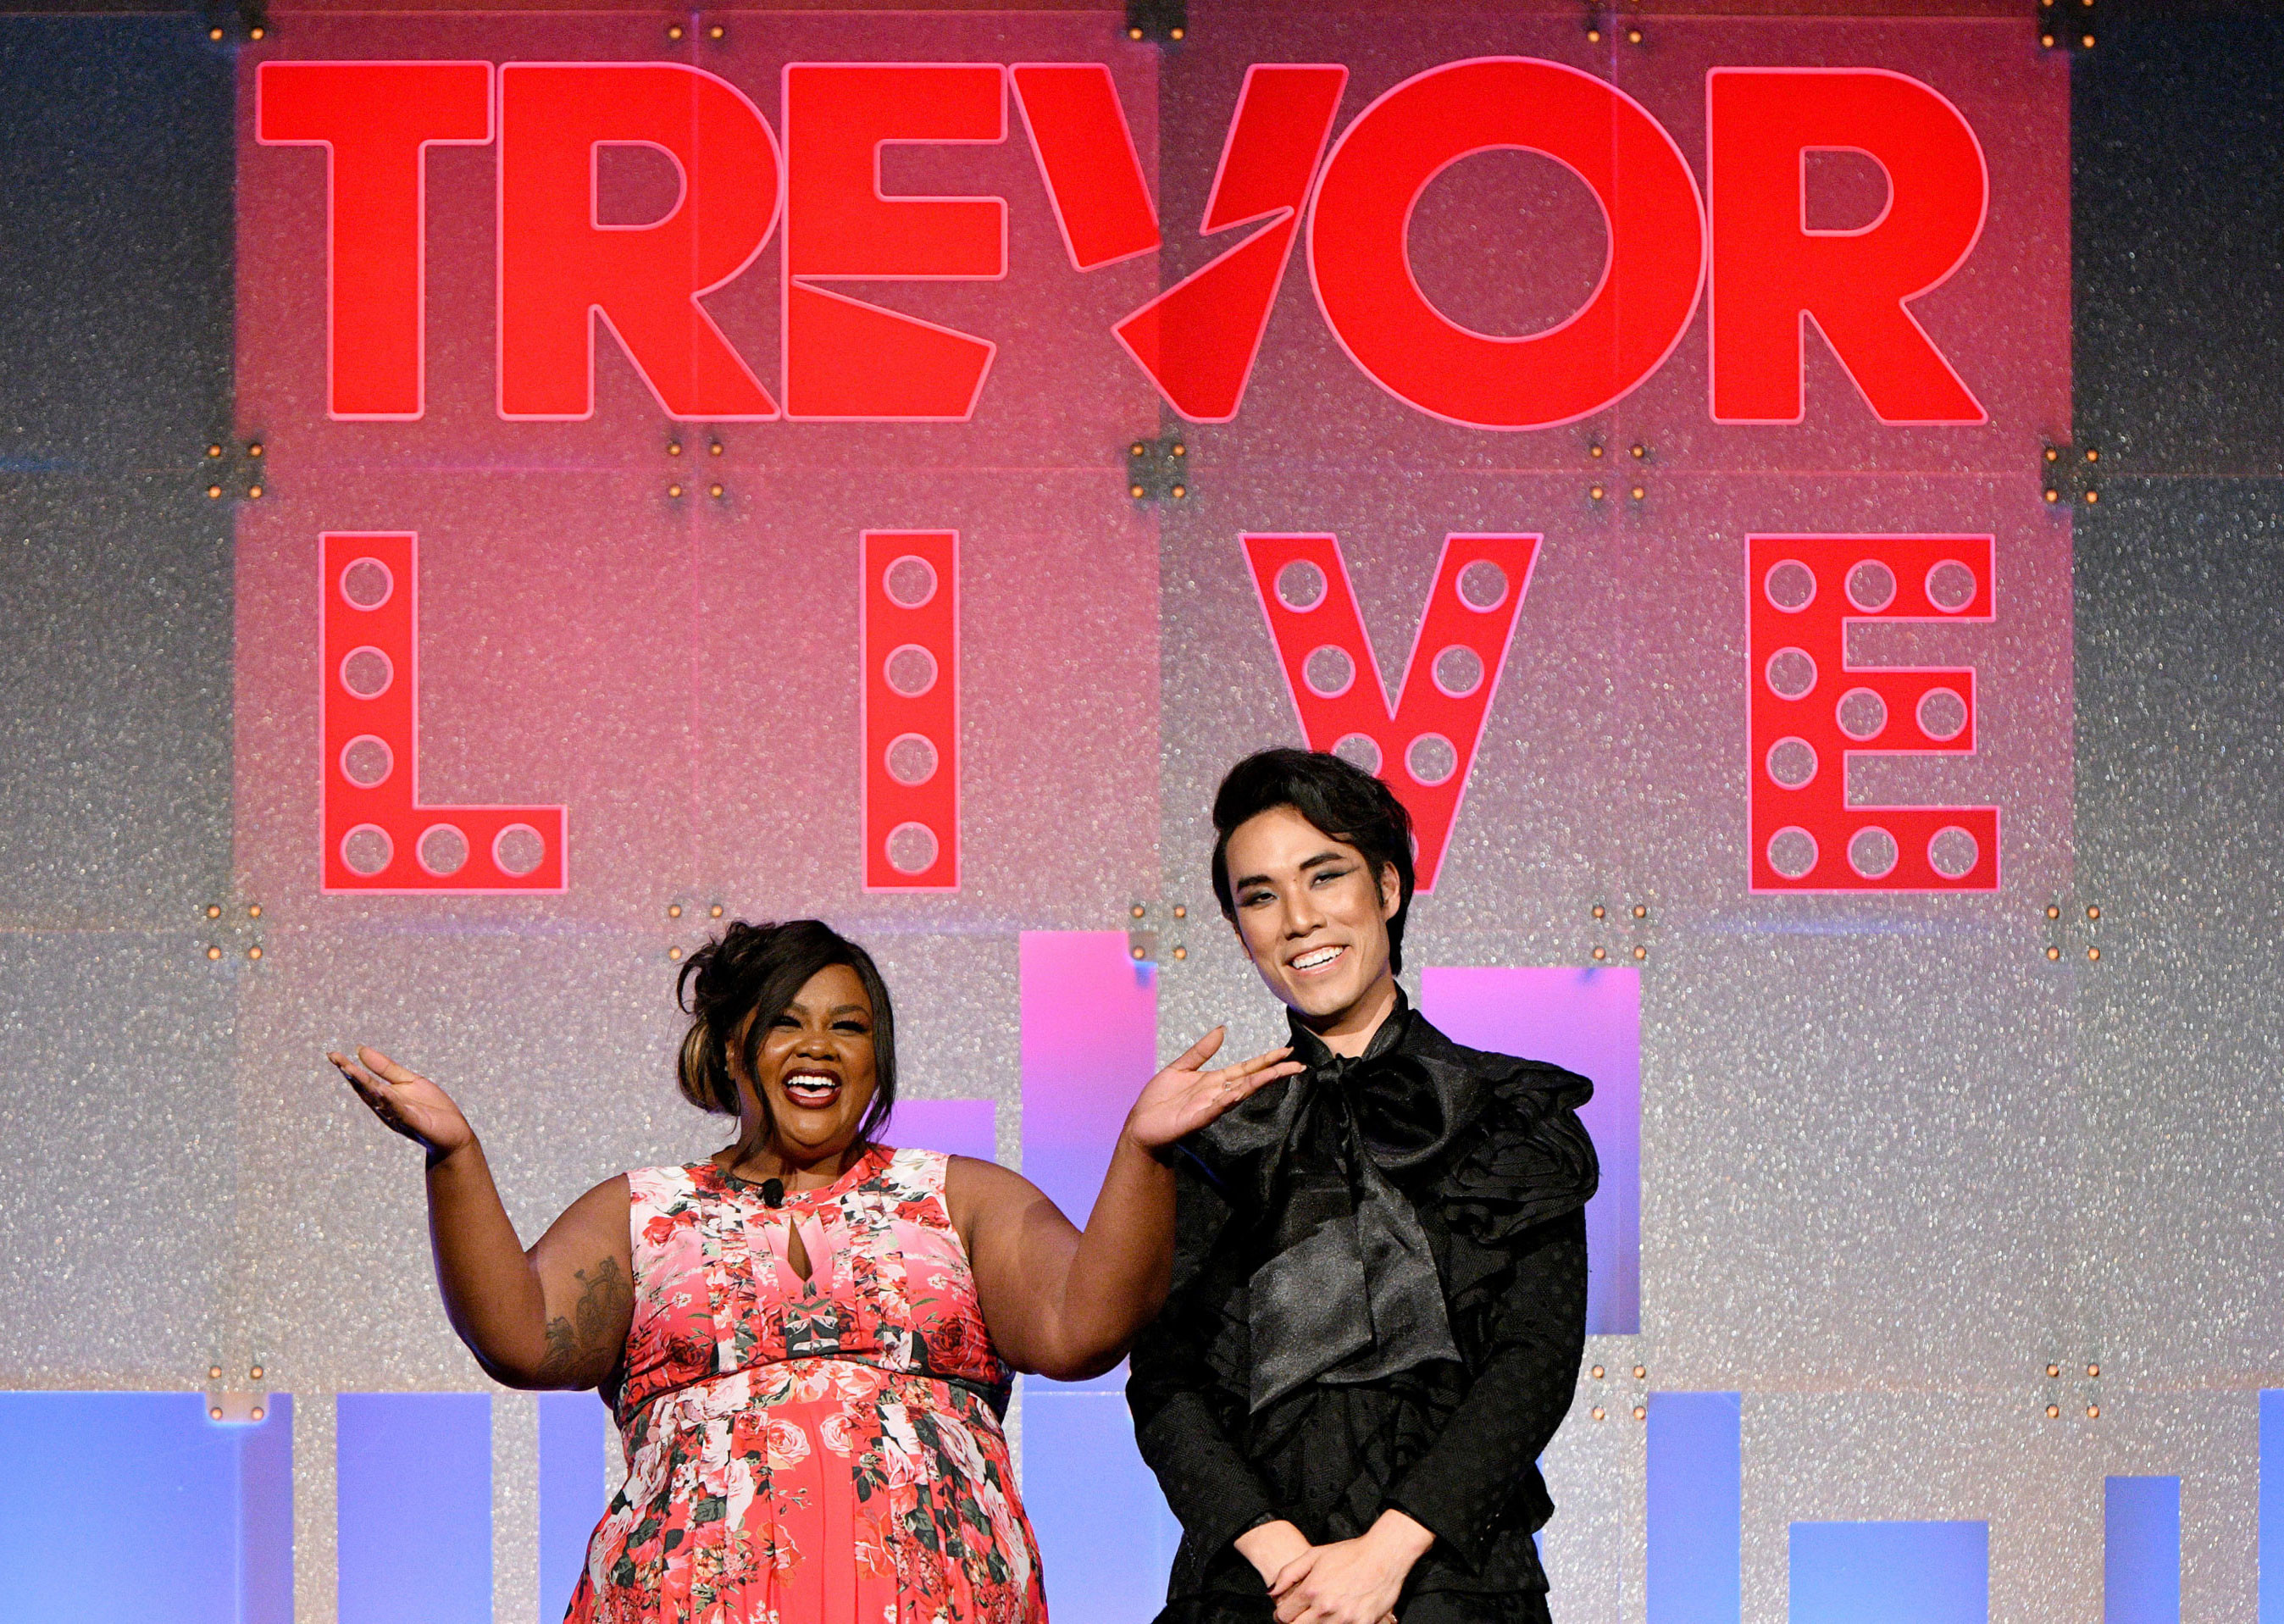 Hosts Nicole Byer and Eugene Lee Yang in front of the TrevorLIVE stage backdrop